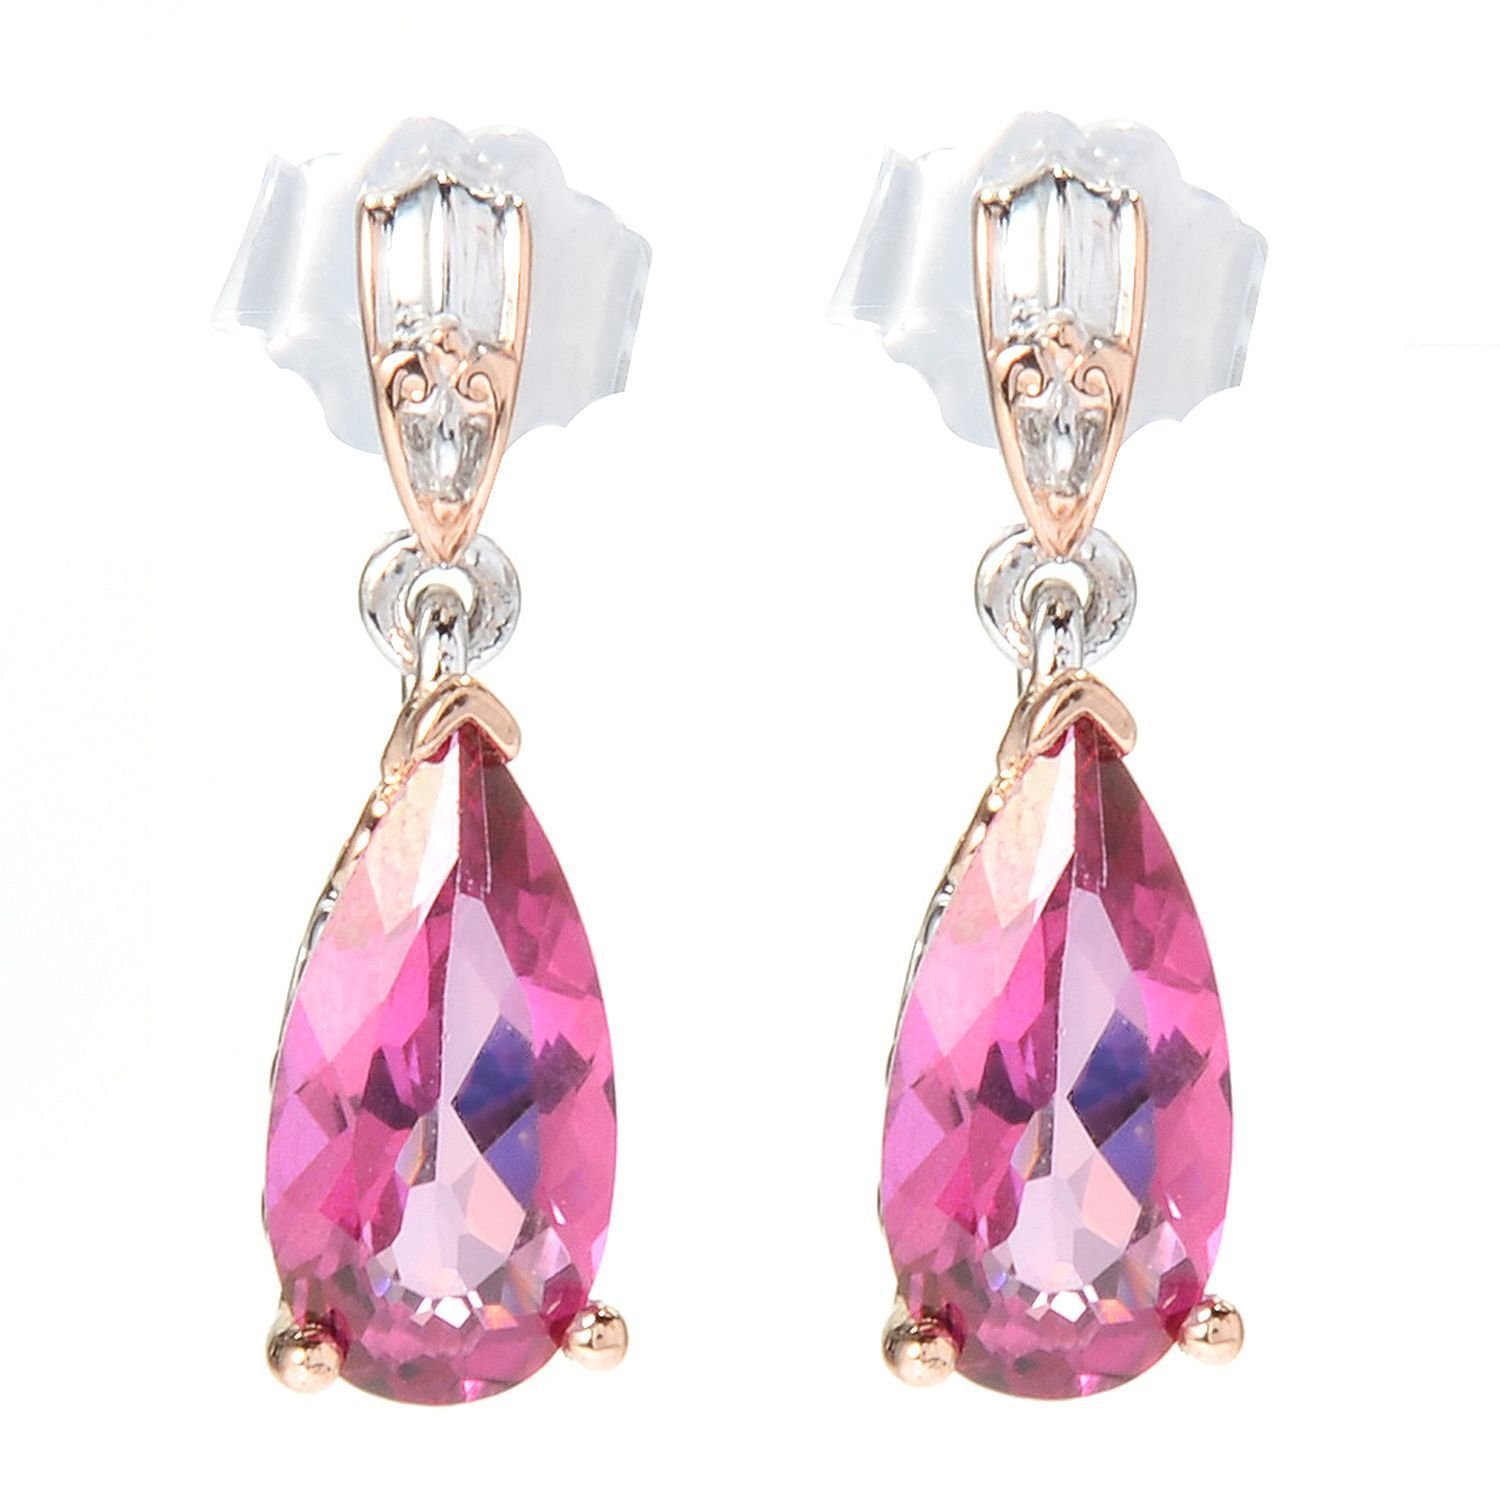 Michael Valitutti Palladium Silver Pear Shaped Pink Topaz Drop Earrings Free Shipping Today 16683033